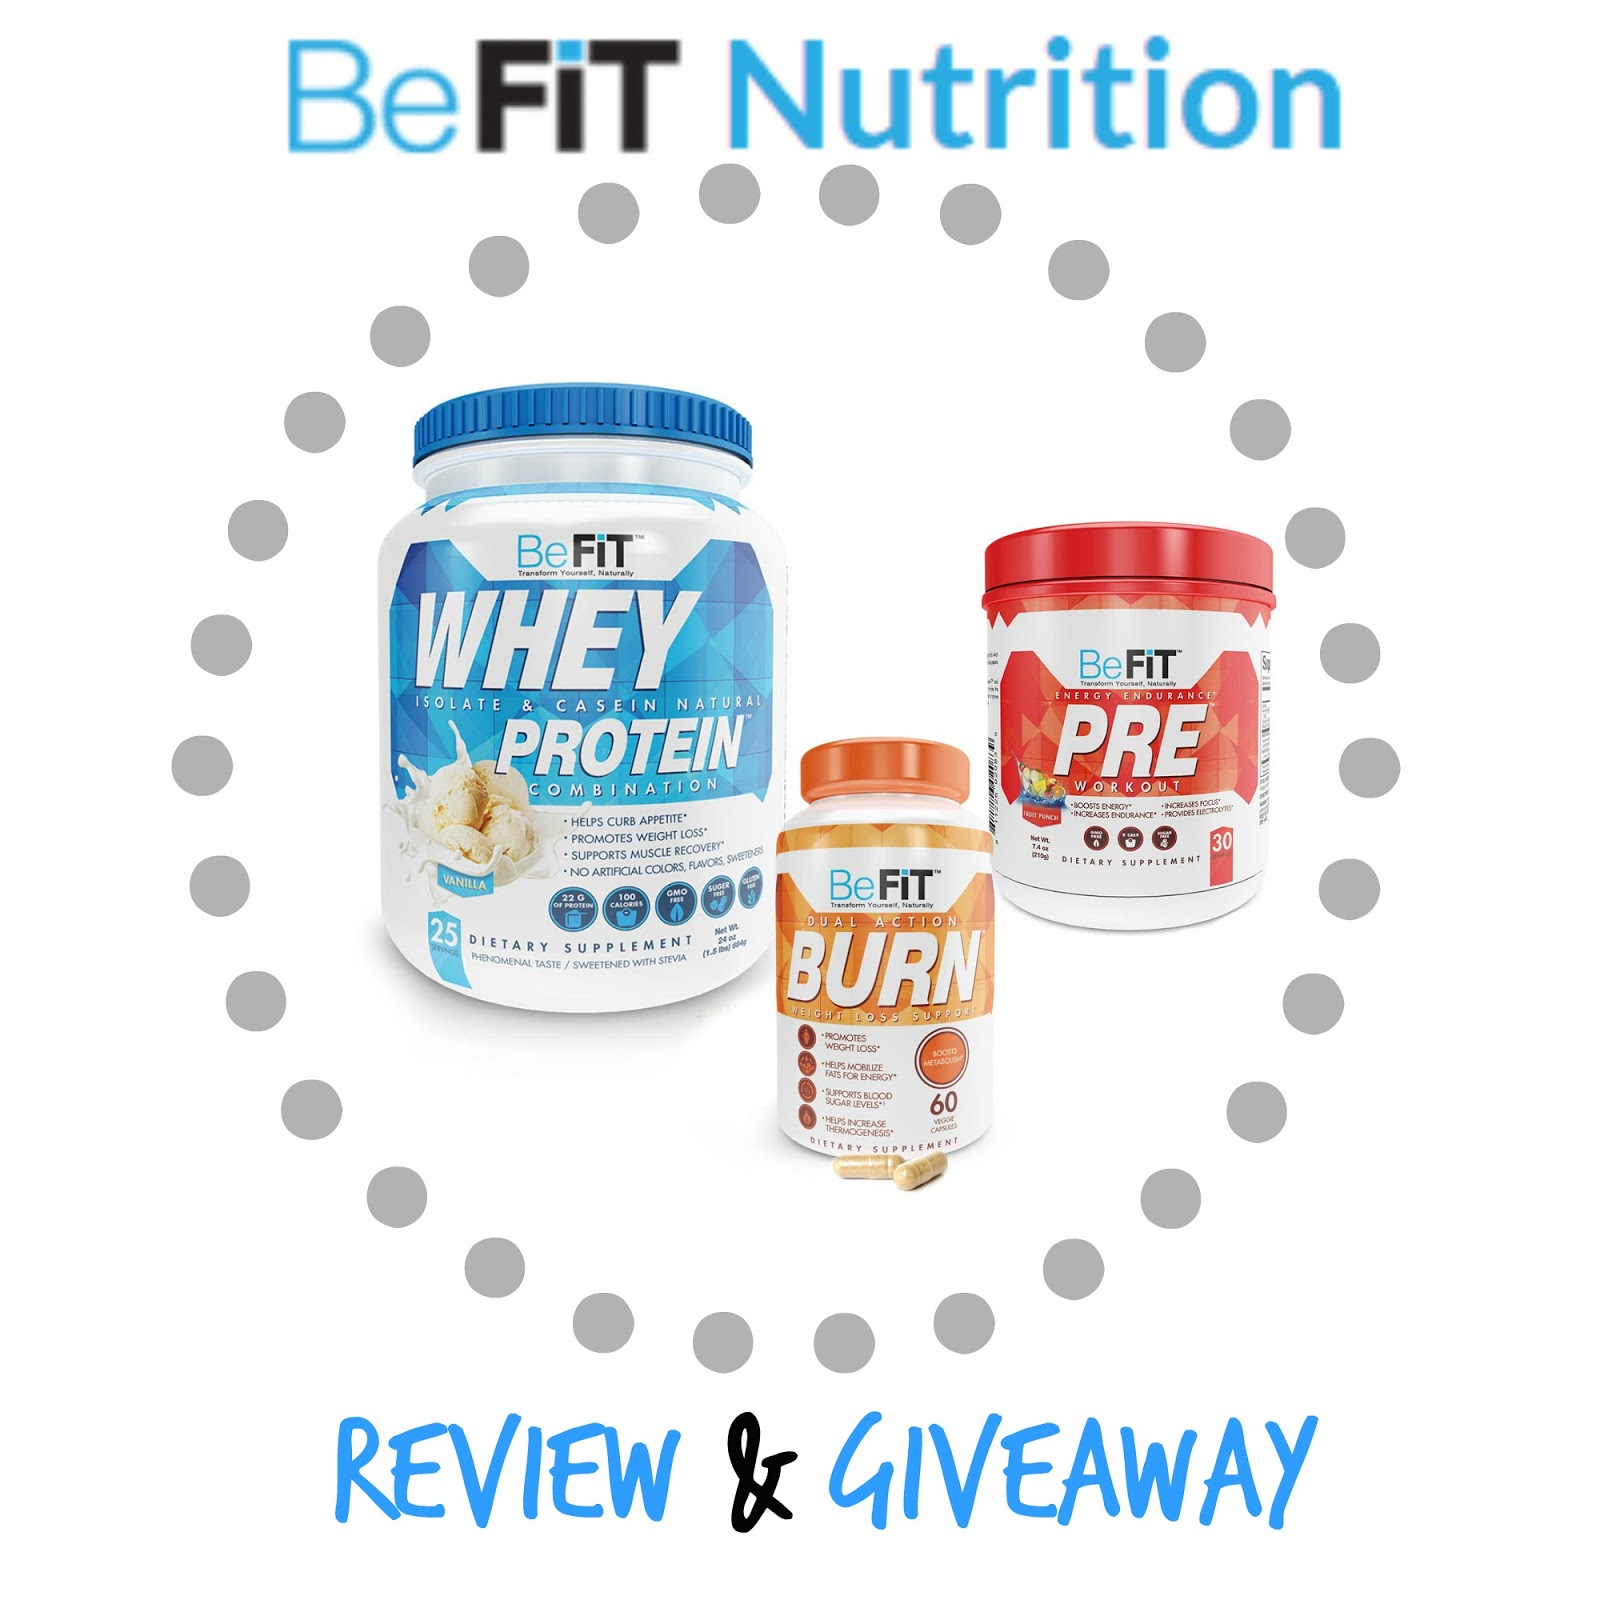 BeFit Review and Giveaway